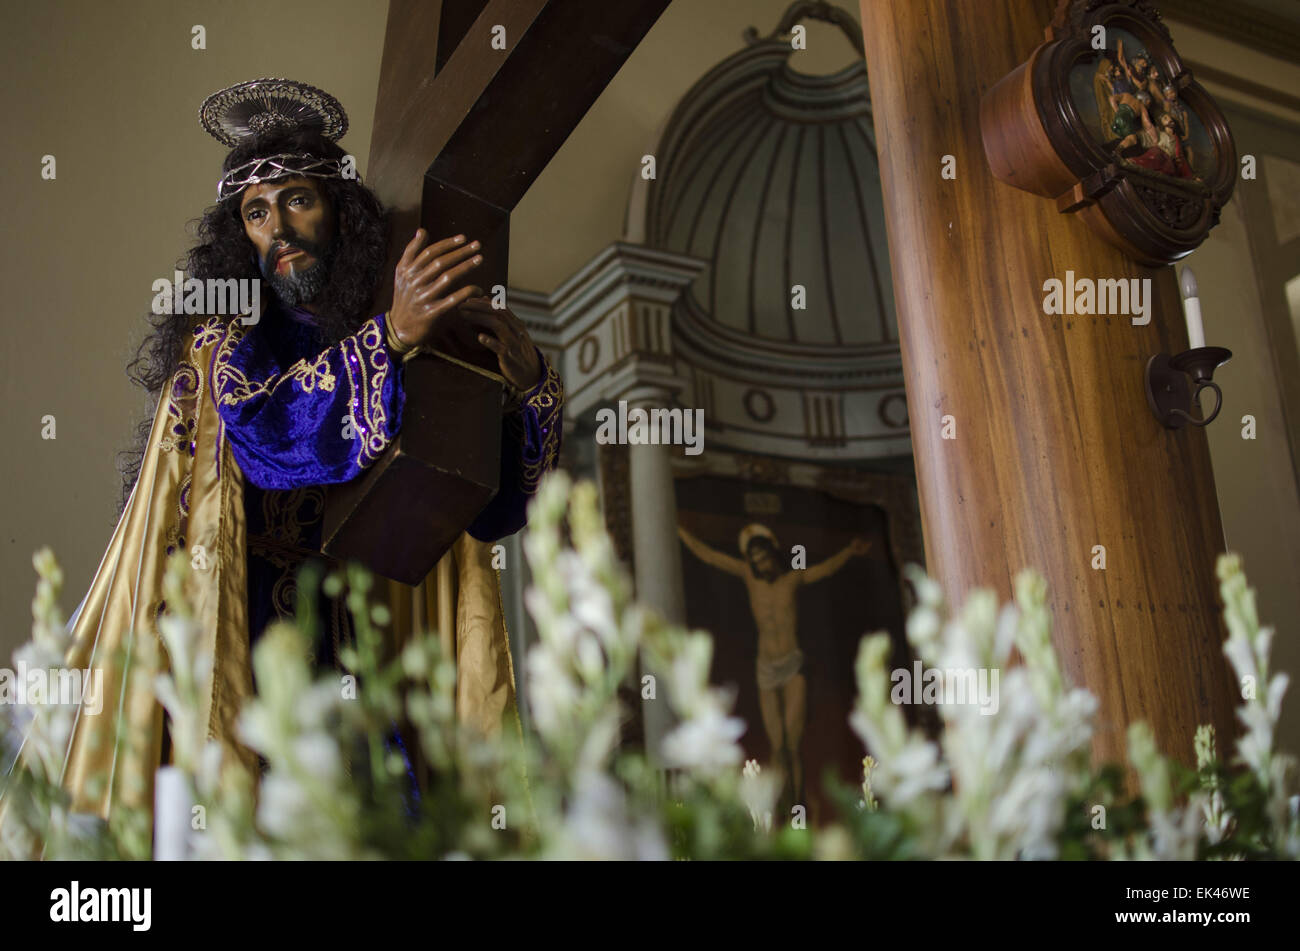 April 3 2015 suchitoto cuscatln el salvador a christ april 3 2015 suchitoto cuscatln el salvador a christ figure used in processions is displayed in the santa luca church in suchitoto el salvador sciox Gallery